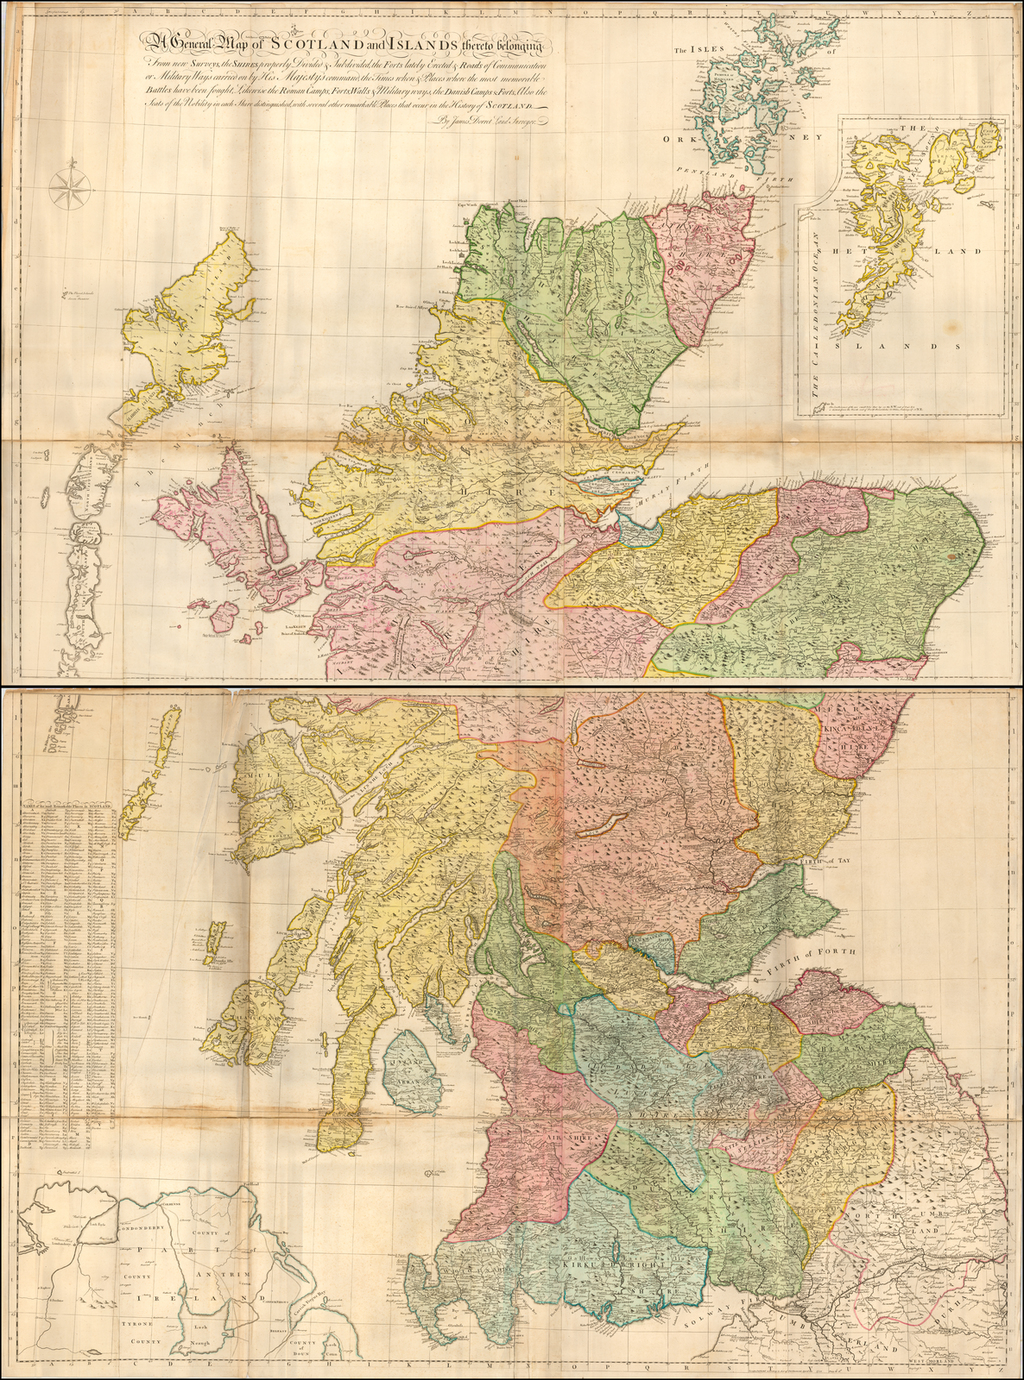 A General Map of Scotland and Islands thereto belonging From new Surveys, the Shires properly Divided & Subdivided, the Forts lately Erected & Roads of Communication or Military Ways carried on by His Majesty's command, the Times when & Places where the most memorable Battles have been fought, Likewise the Roman Camps, Forts, Walls, & Military Ways, the Danish Camps & Forts, Also the Seats of Nobility in each Shire distinguished, with several other remarkable Places that occur in the History of Scotland. By James Dorret